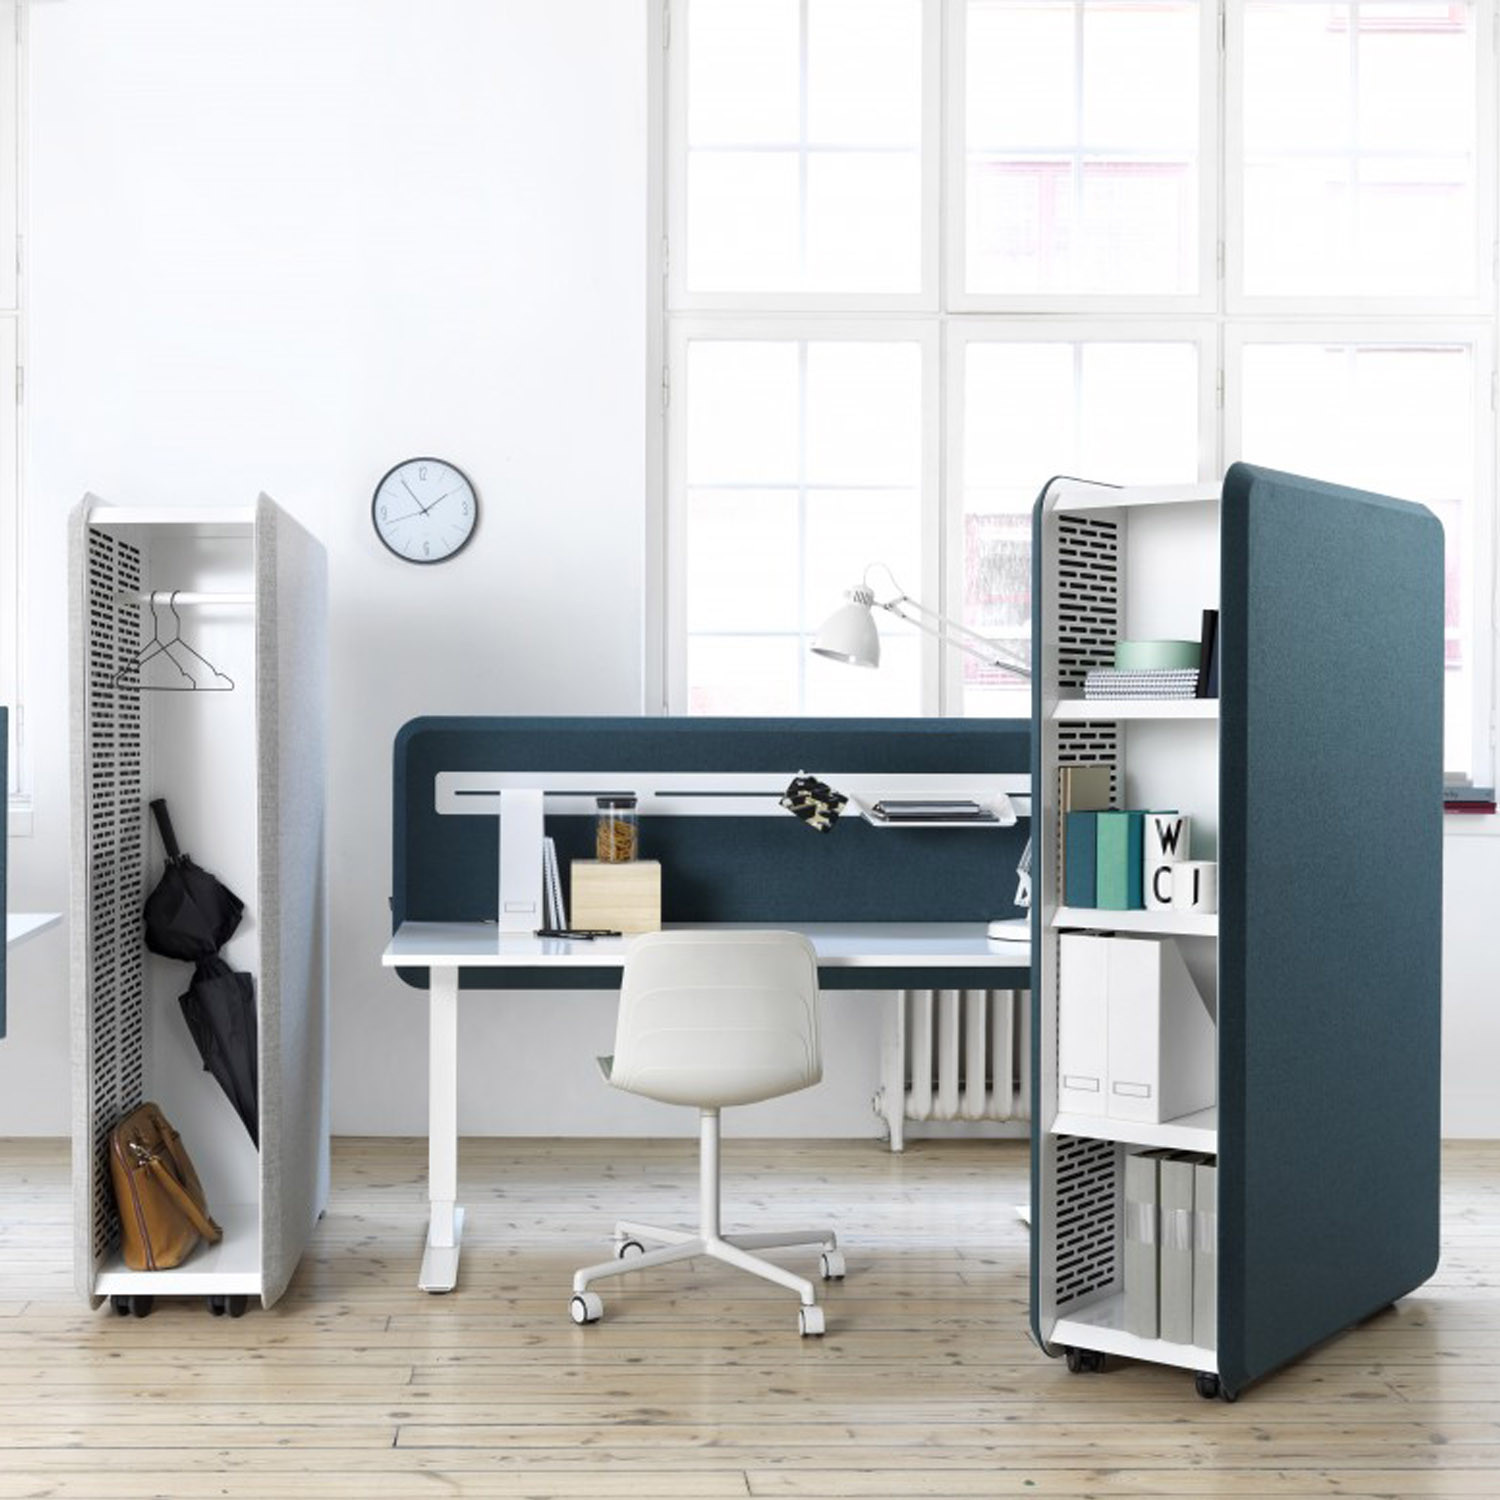 apres storage slam grand sedus system furniture office z